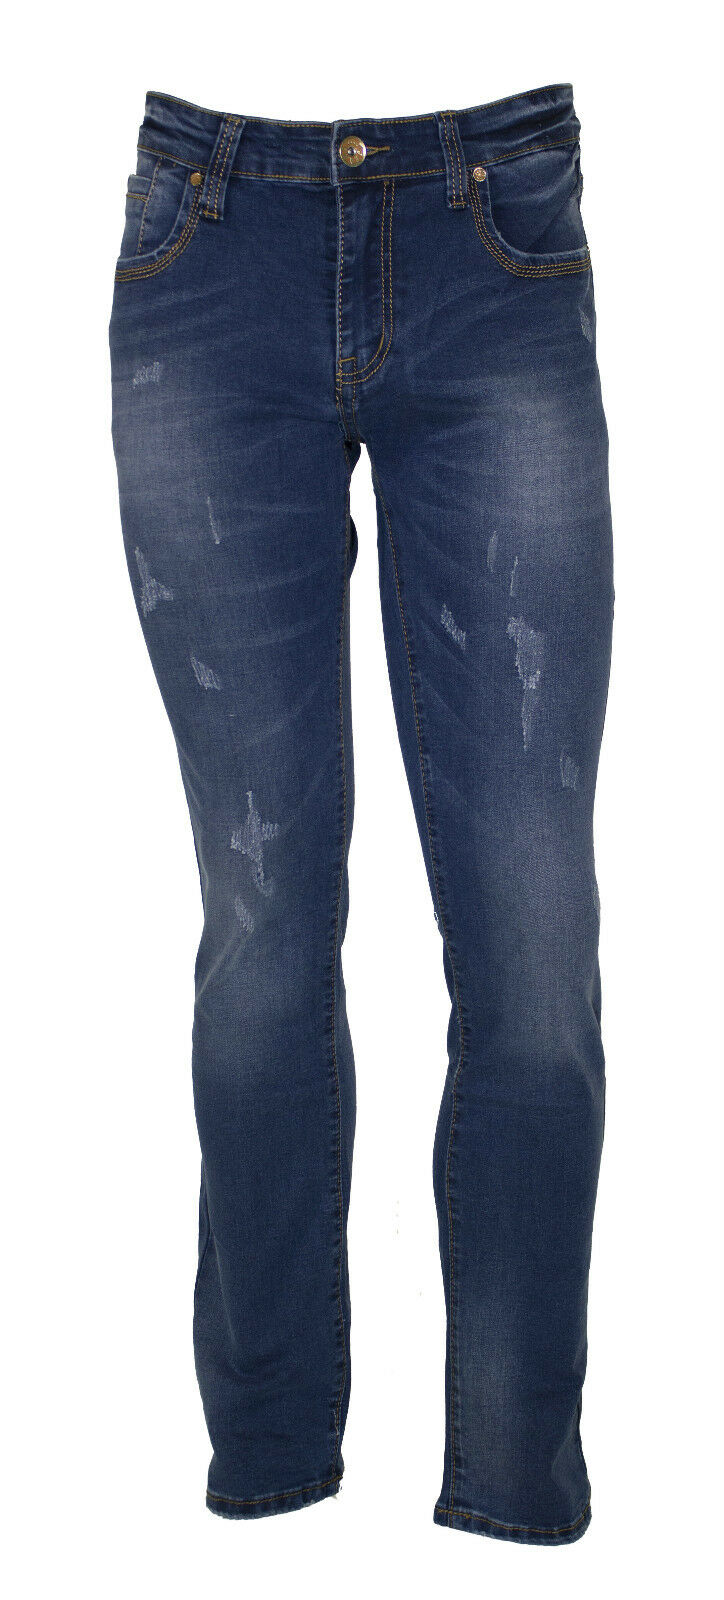 Jeans men Denim AI14E20N980 N+1 Jeans